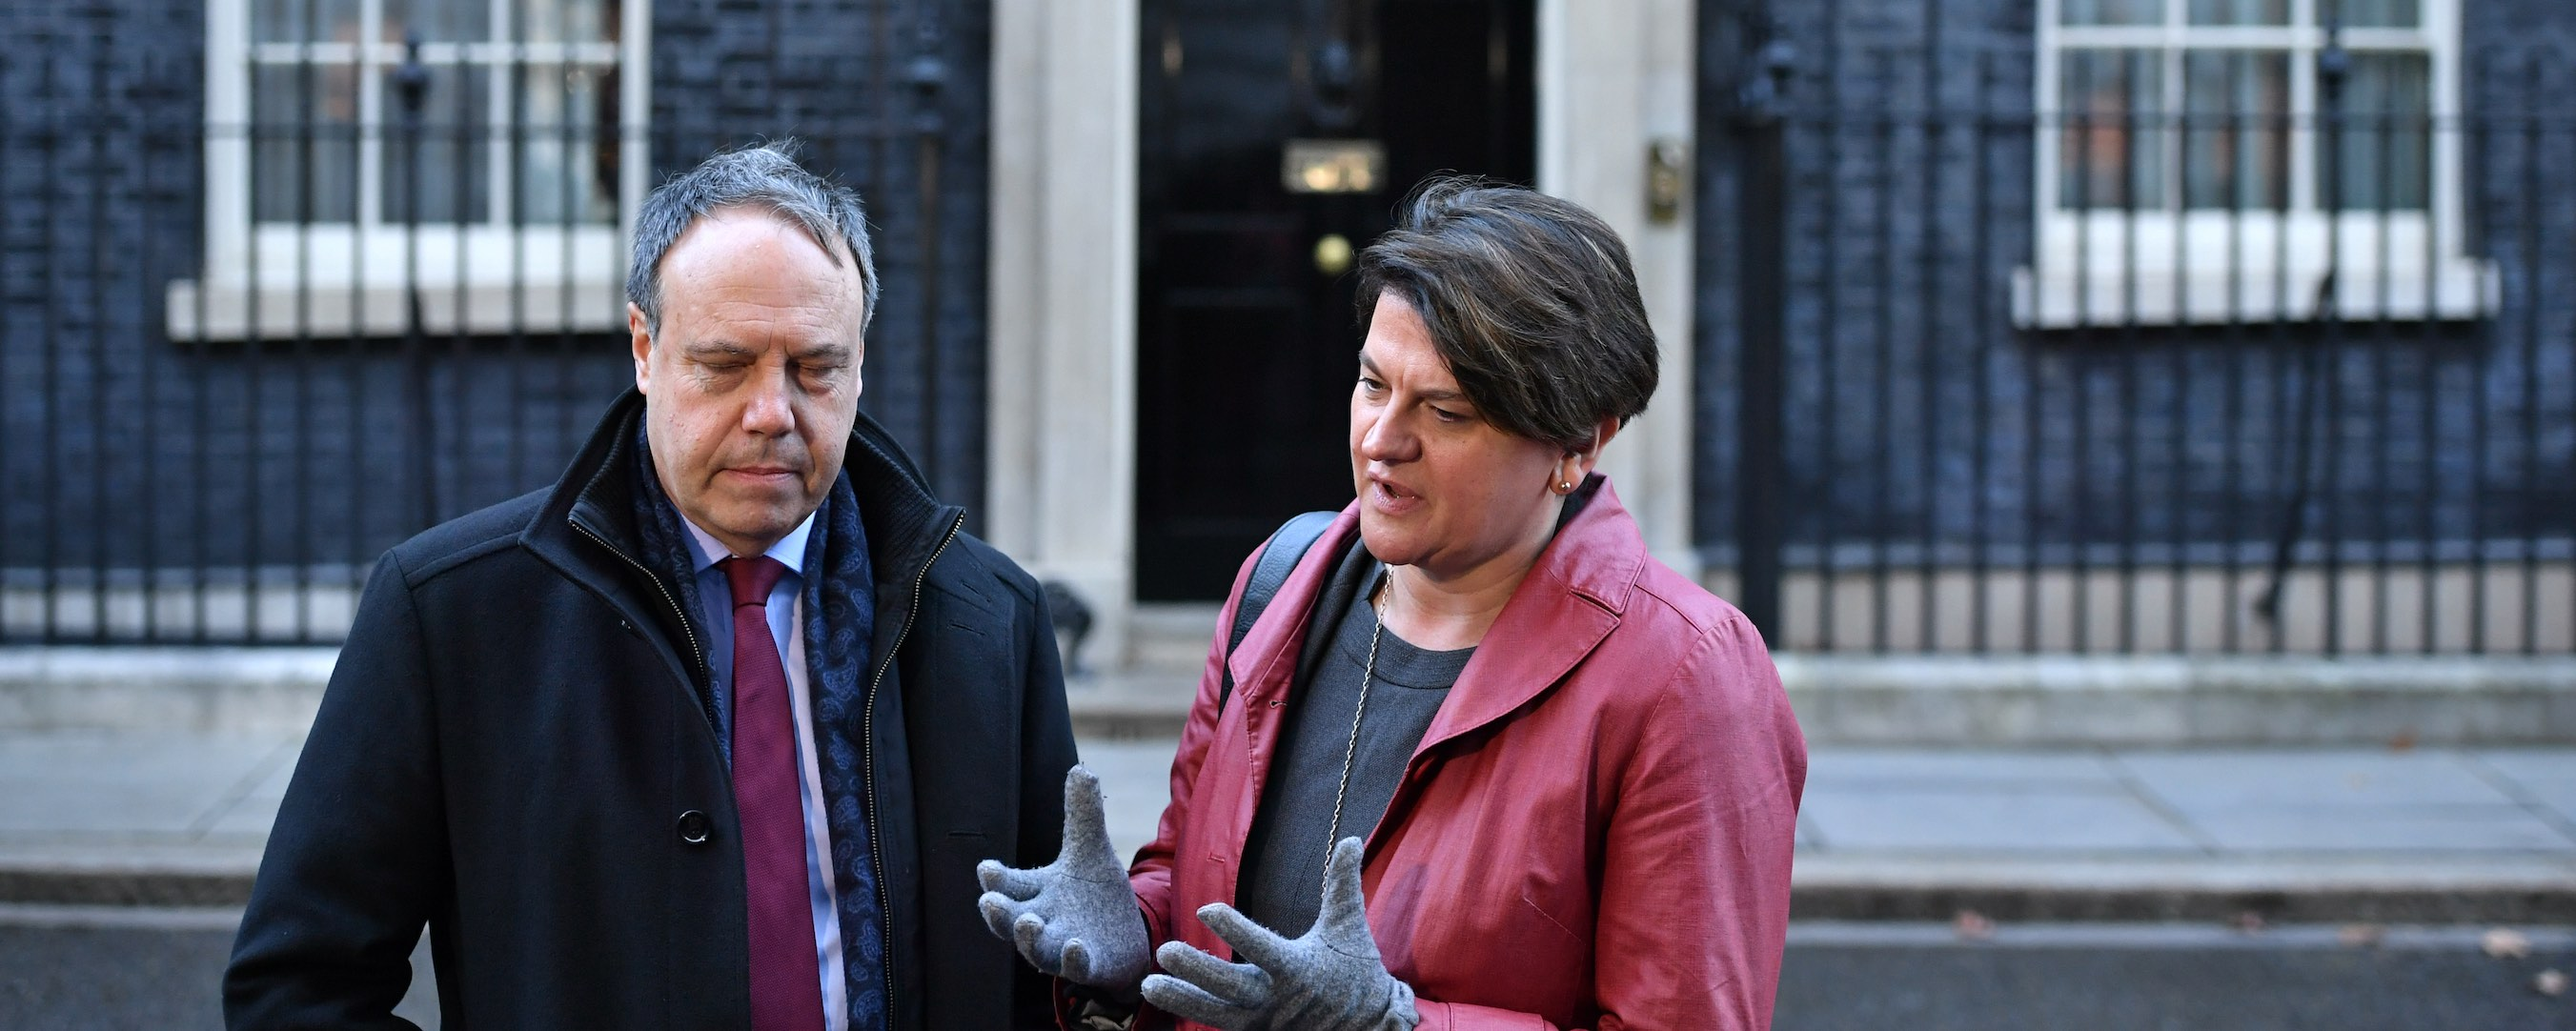 The DUP's Nigel Dodds and Arlene Foster.